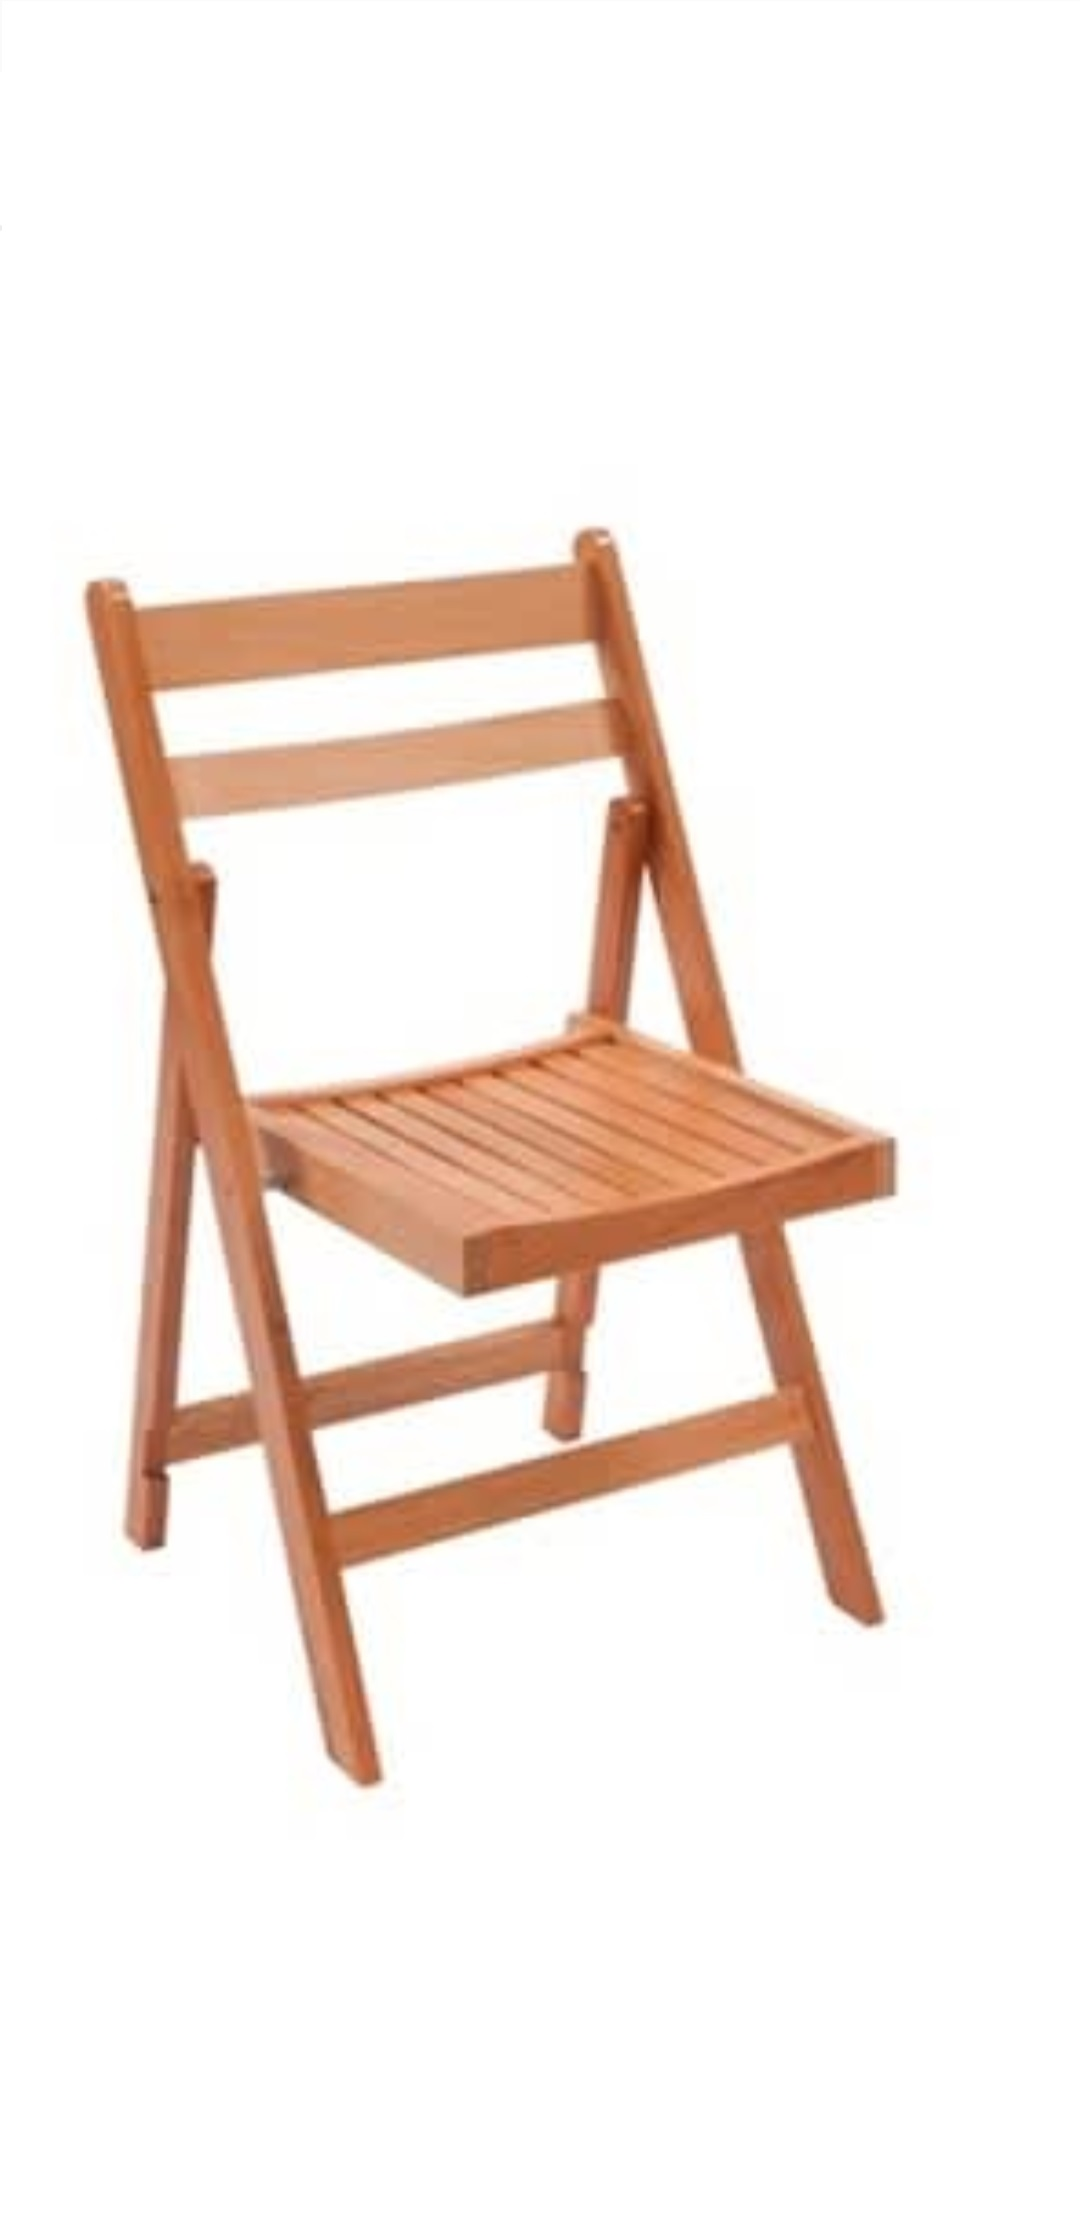 Admirable Folding Wooden Oak Chair New Cancelled Order Model 2534 Delivery Nationwide Alphanode Cool Chair Designs And Ideas Alphanodeonline